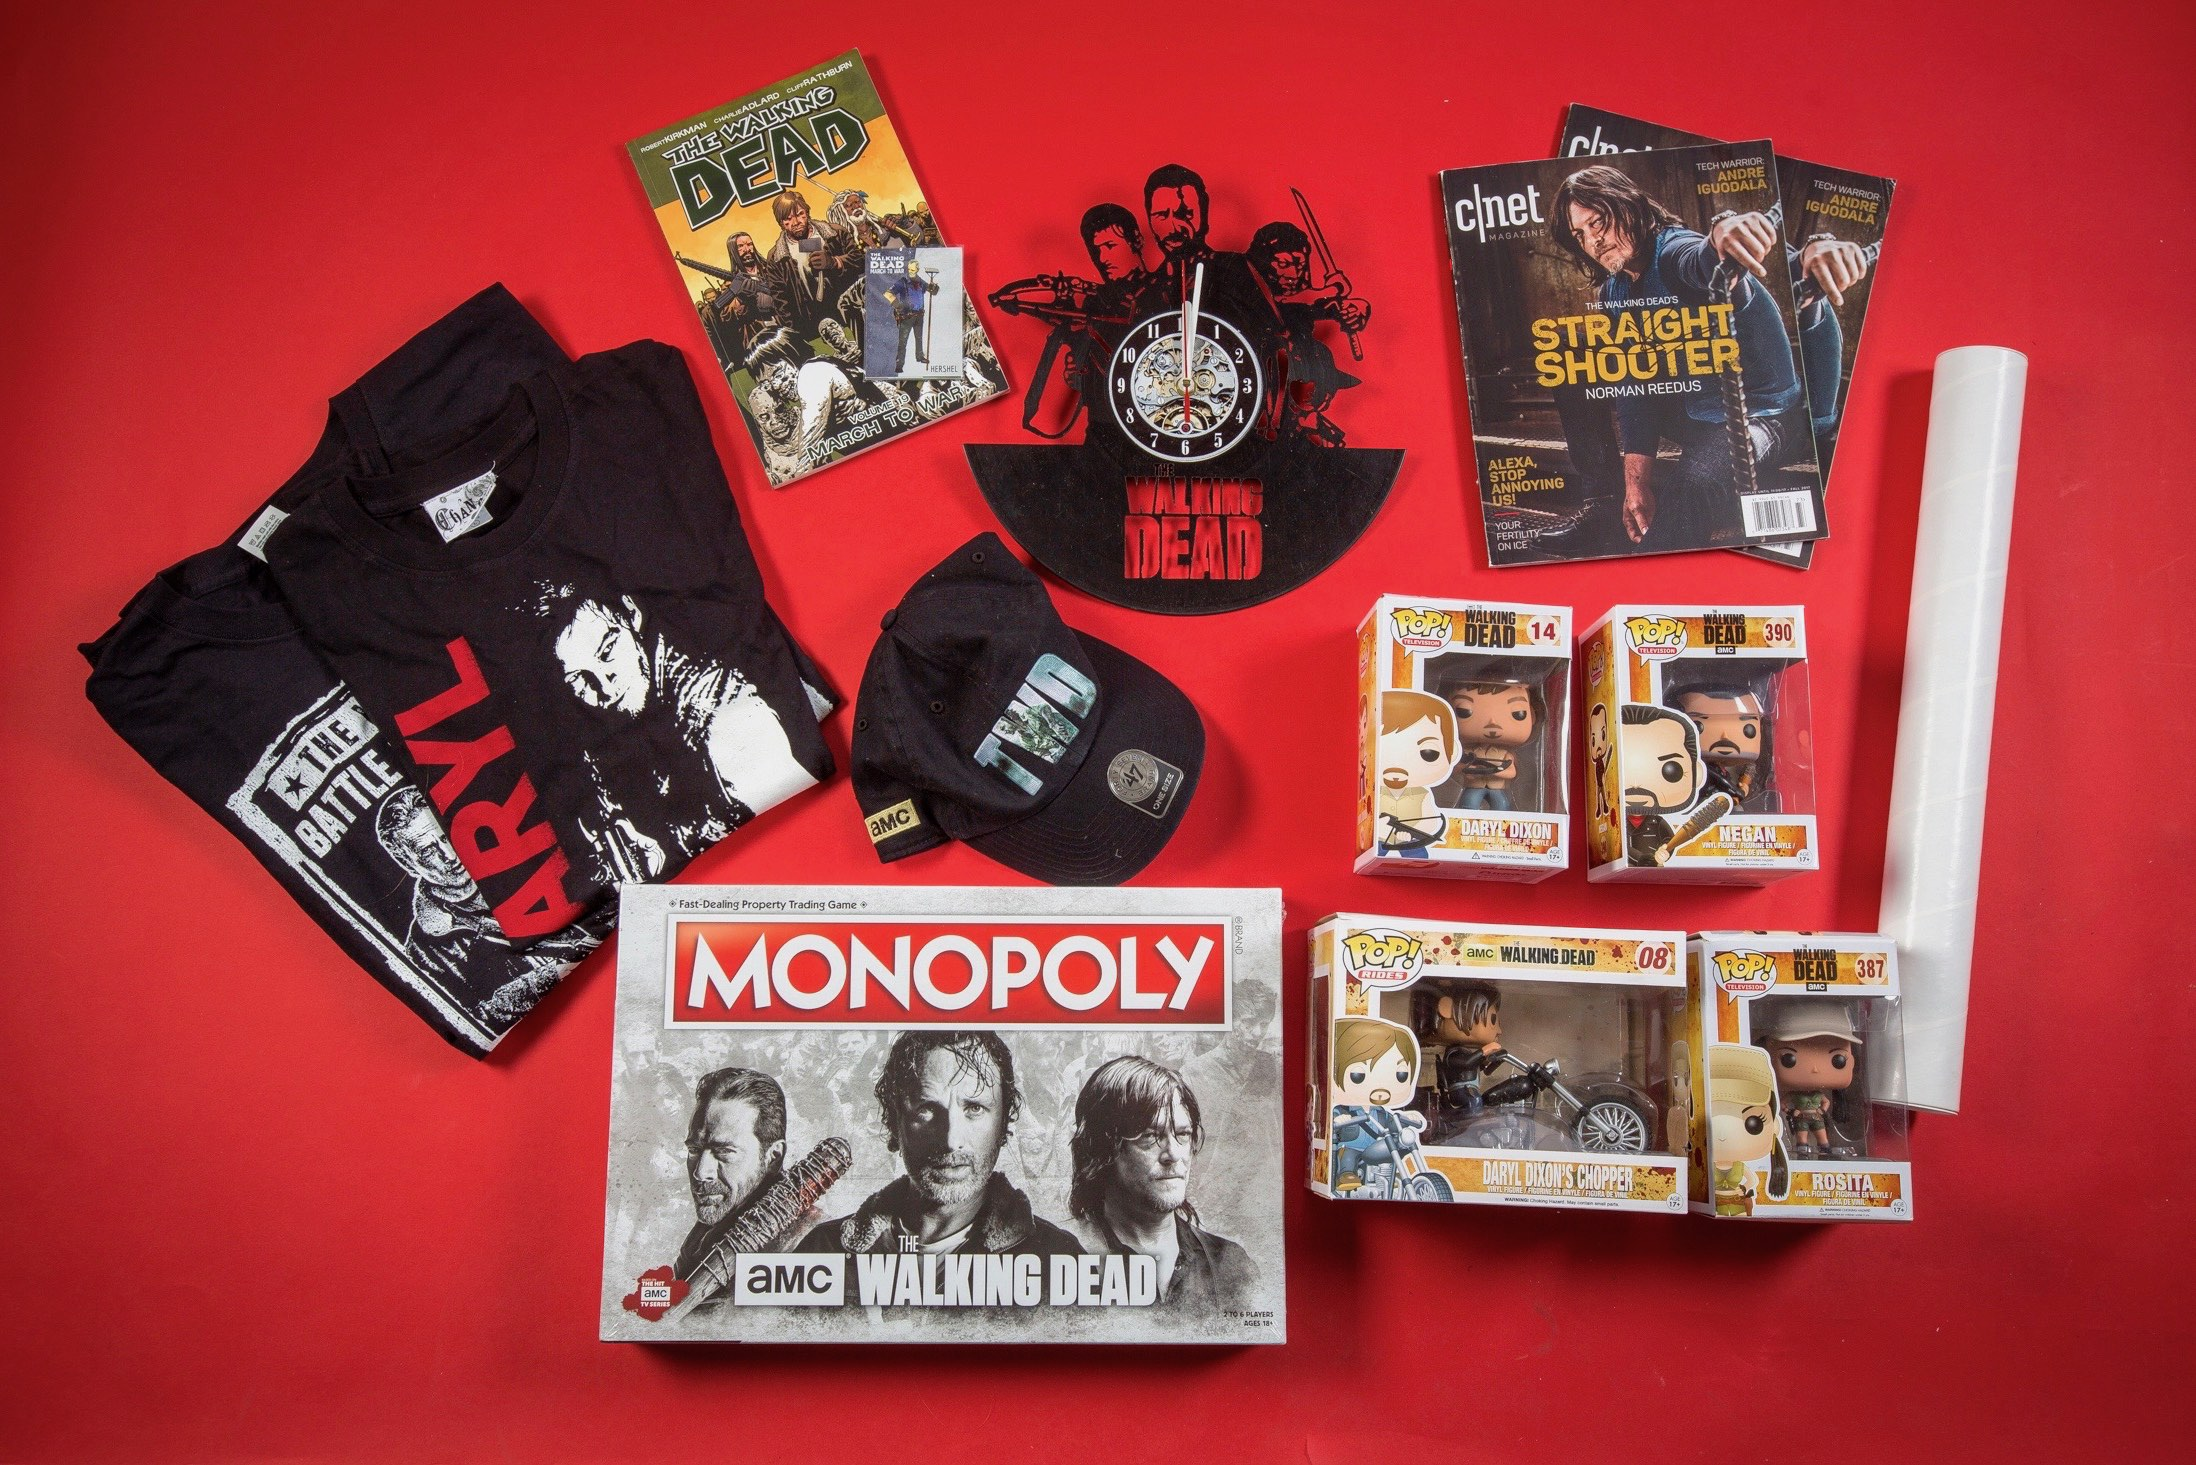 CNET is hosting The Walking Dead giveaway with awesome prizes for four lucky winners to take home.